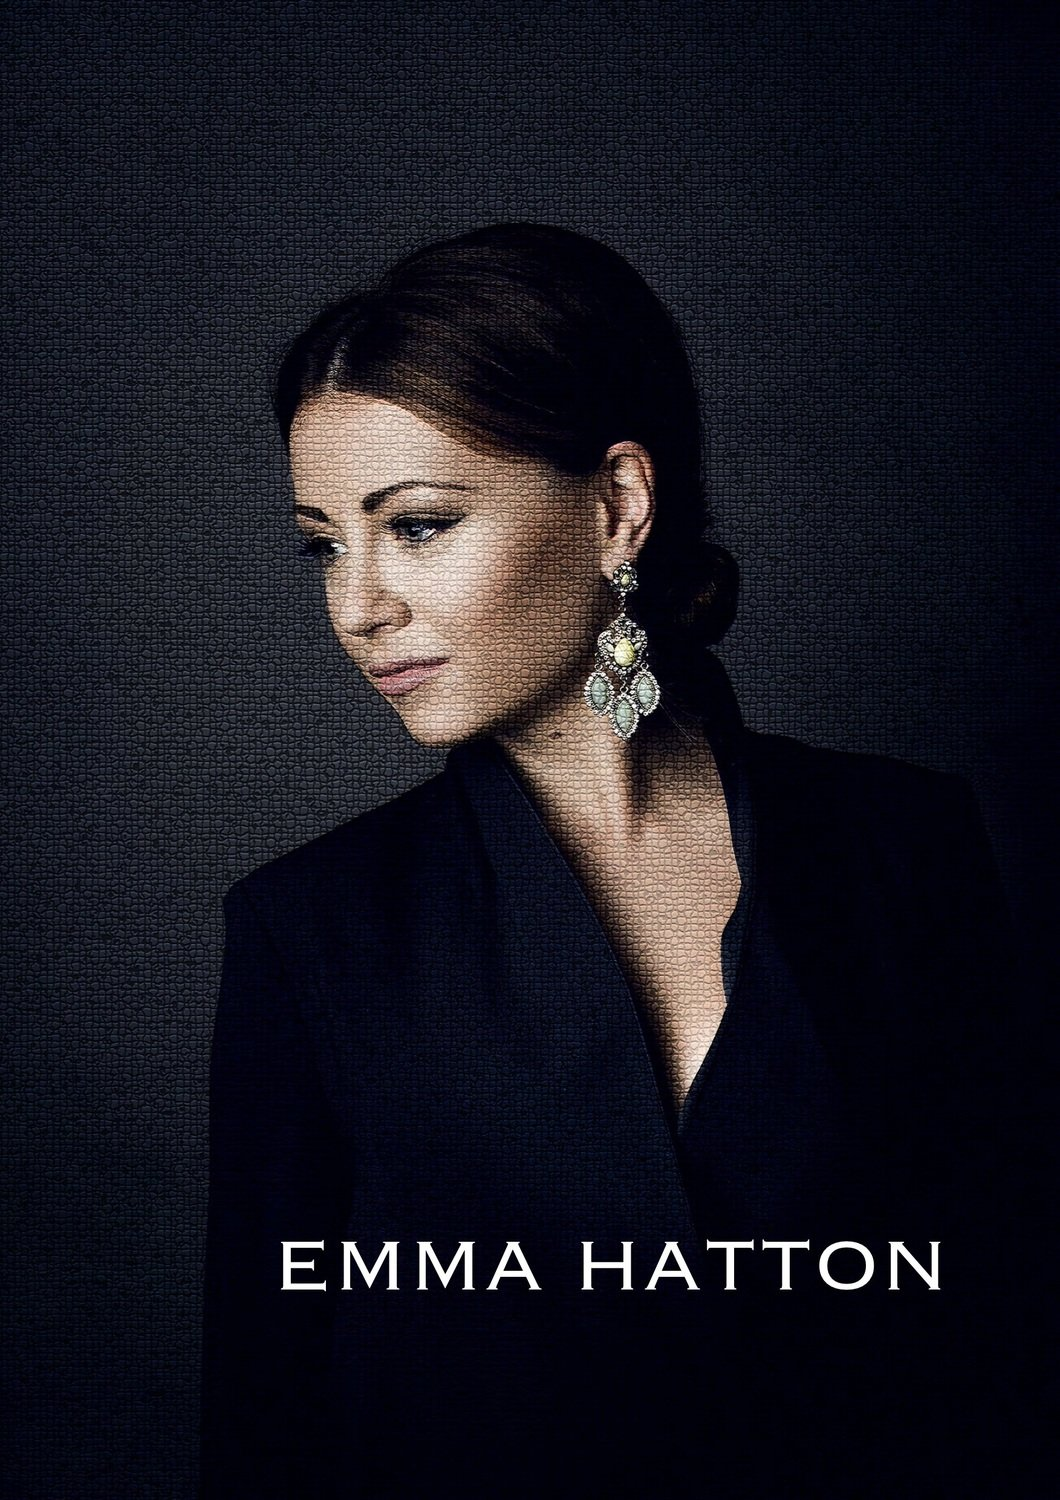 PERSONALISED SIGNED Emma Hatton A3 Poster (FREE SHIPPING)